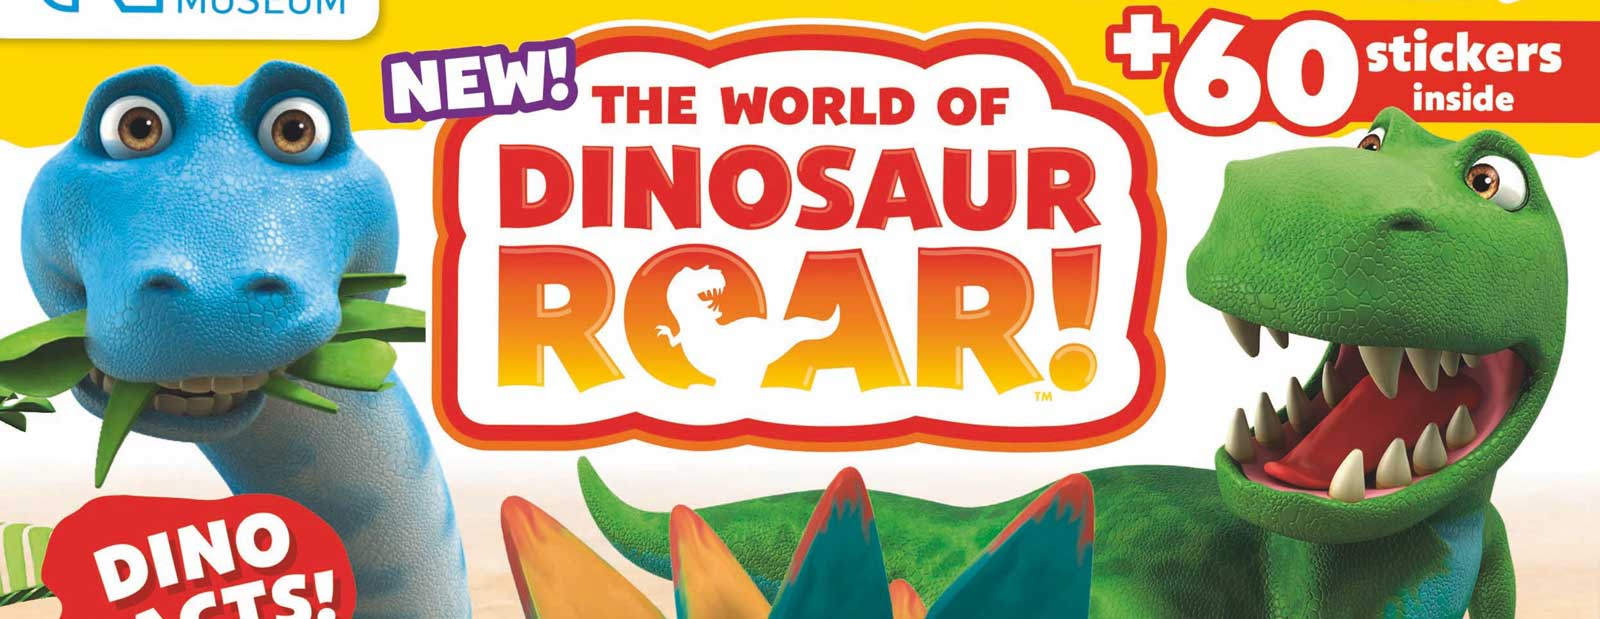 World Of Dinosaur Roar! magazine SNIP